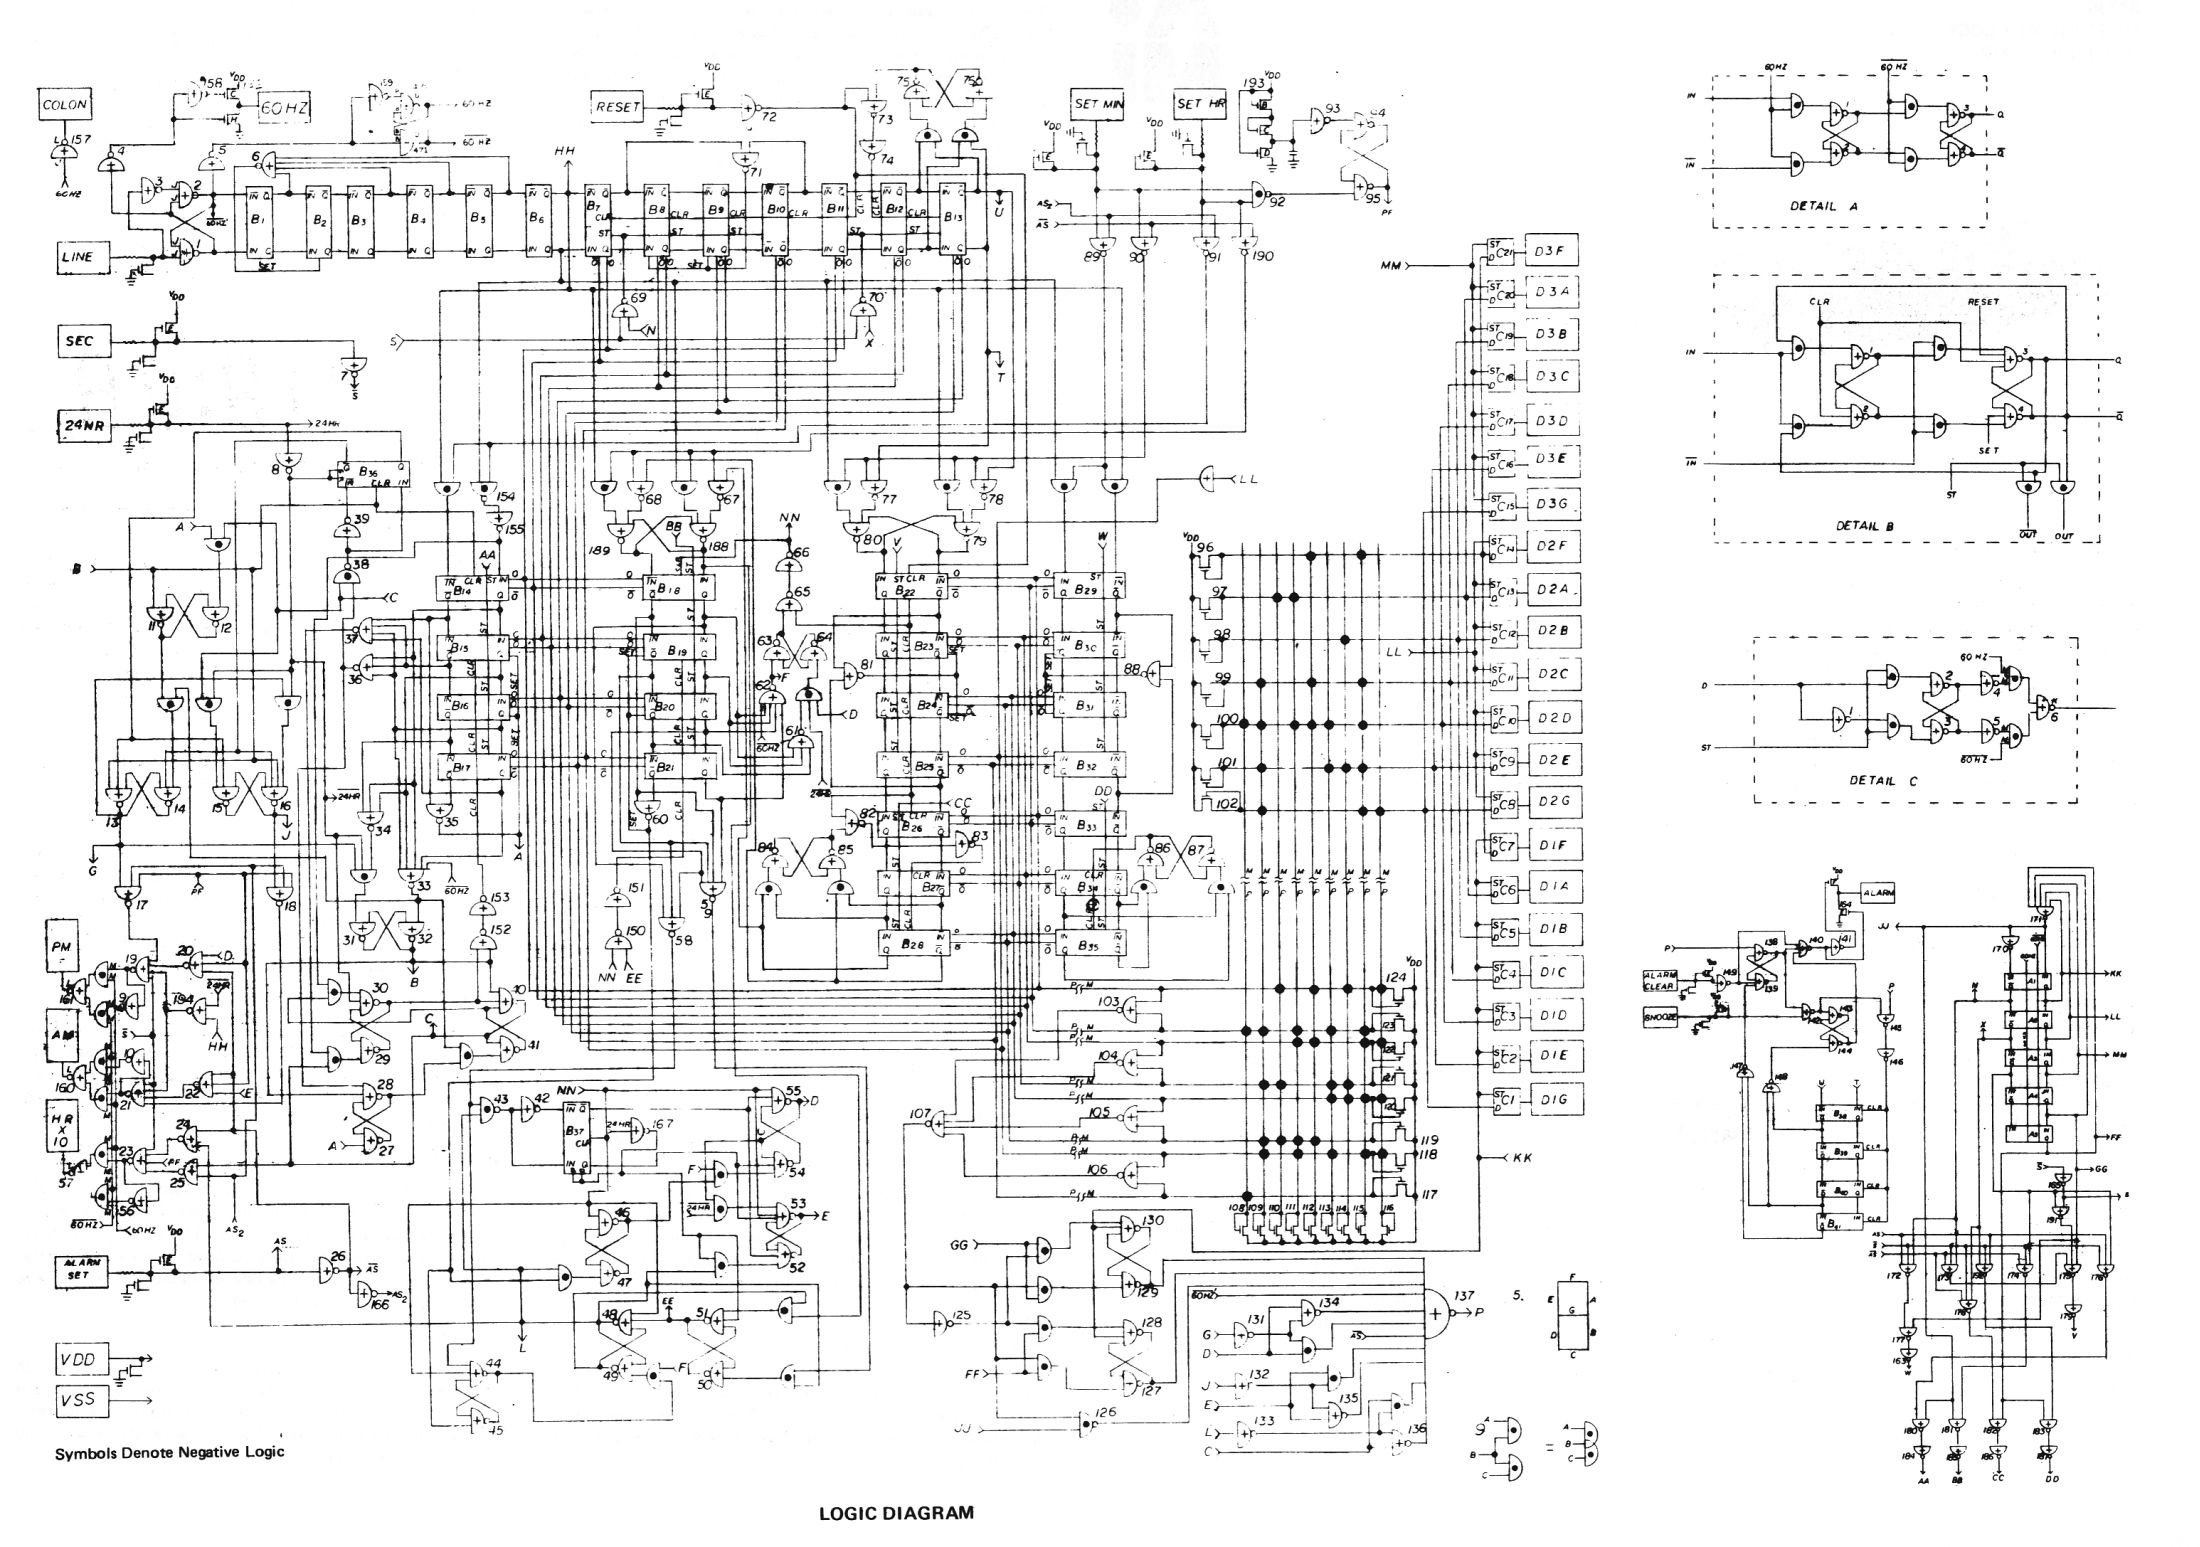 Vintage Digital Clock Circuits Pro Audio Design Forum Electronic Schematics